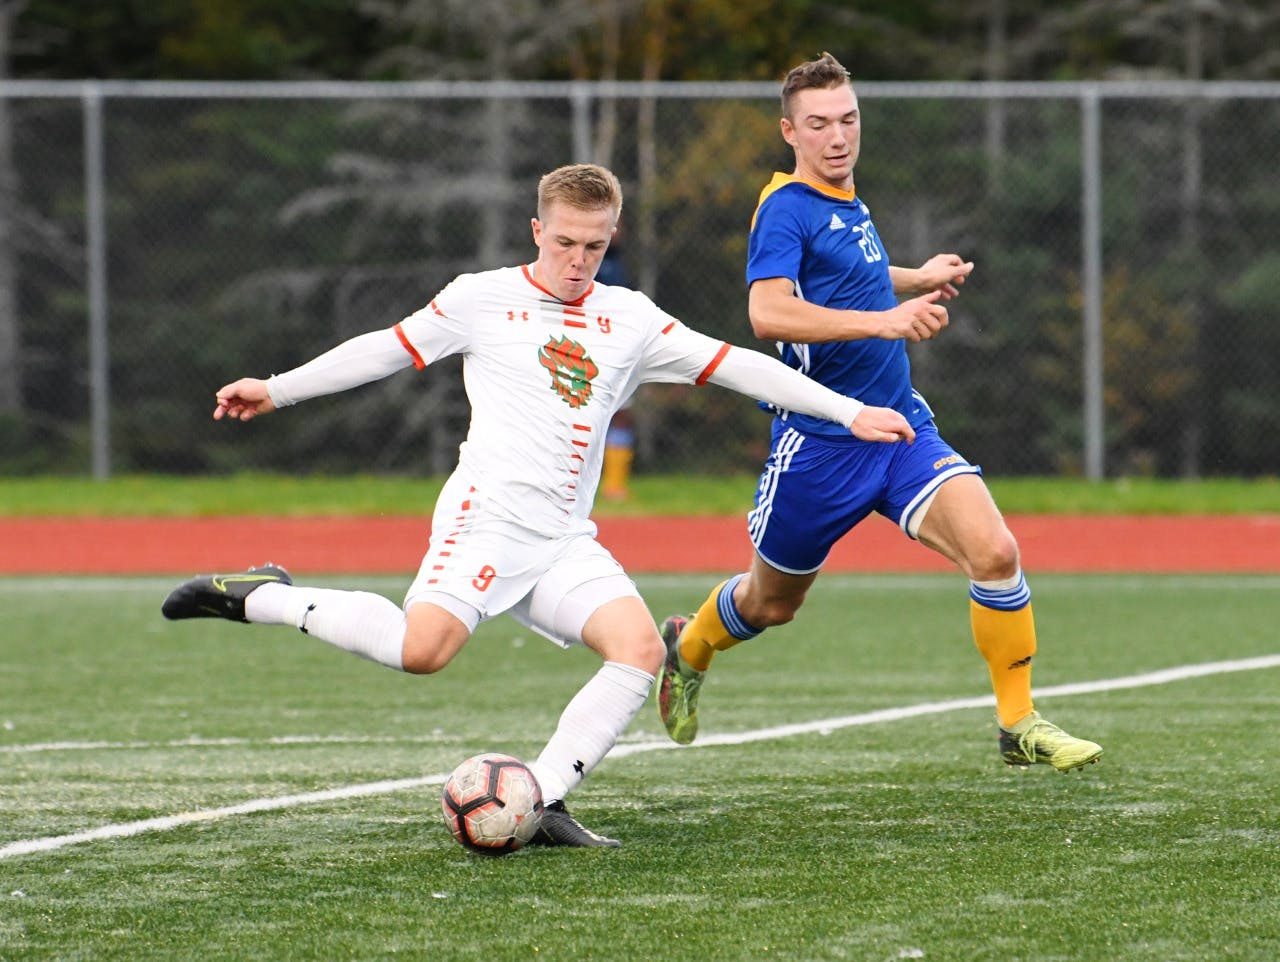 Cape Breton University forward Charlie Waters and his Capers teammates make their return to the pitch for the first time in 21 months. The Atlantic university soccer season opens this weekend. The 2020 AUS campaign was cancelled due to the COVID-19 pandemic. - VAUGHAN MERCHANT / CBU ATHLETICS